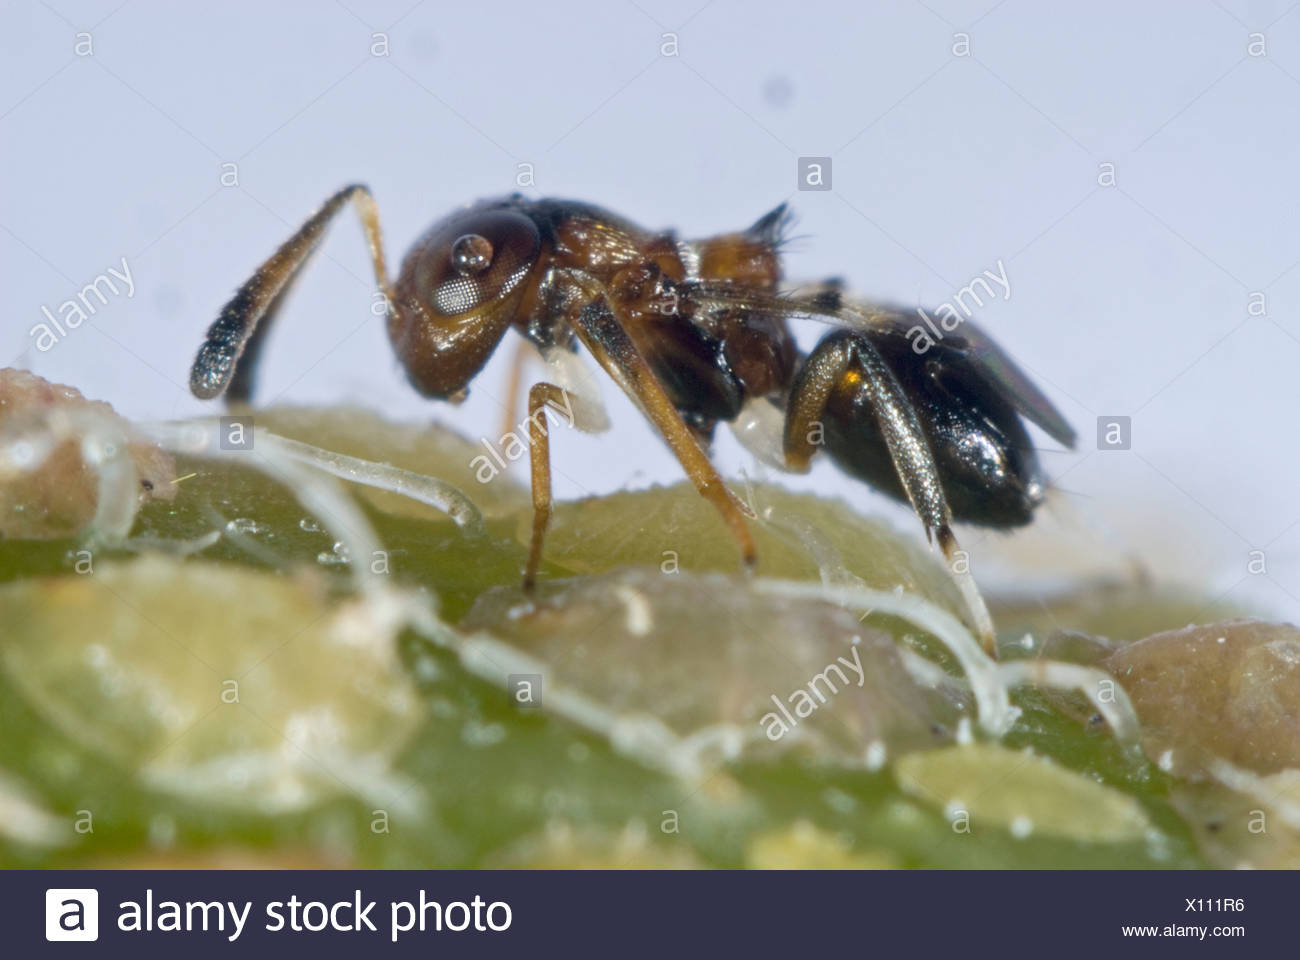 Parasitoid wasp, Encyrtus infelix, commercial biological control parasitoid with scale insect host pests in protected crops - Stock Image